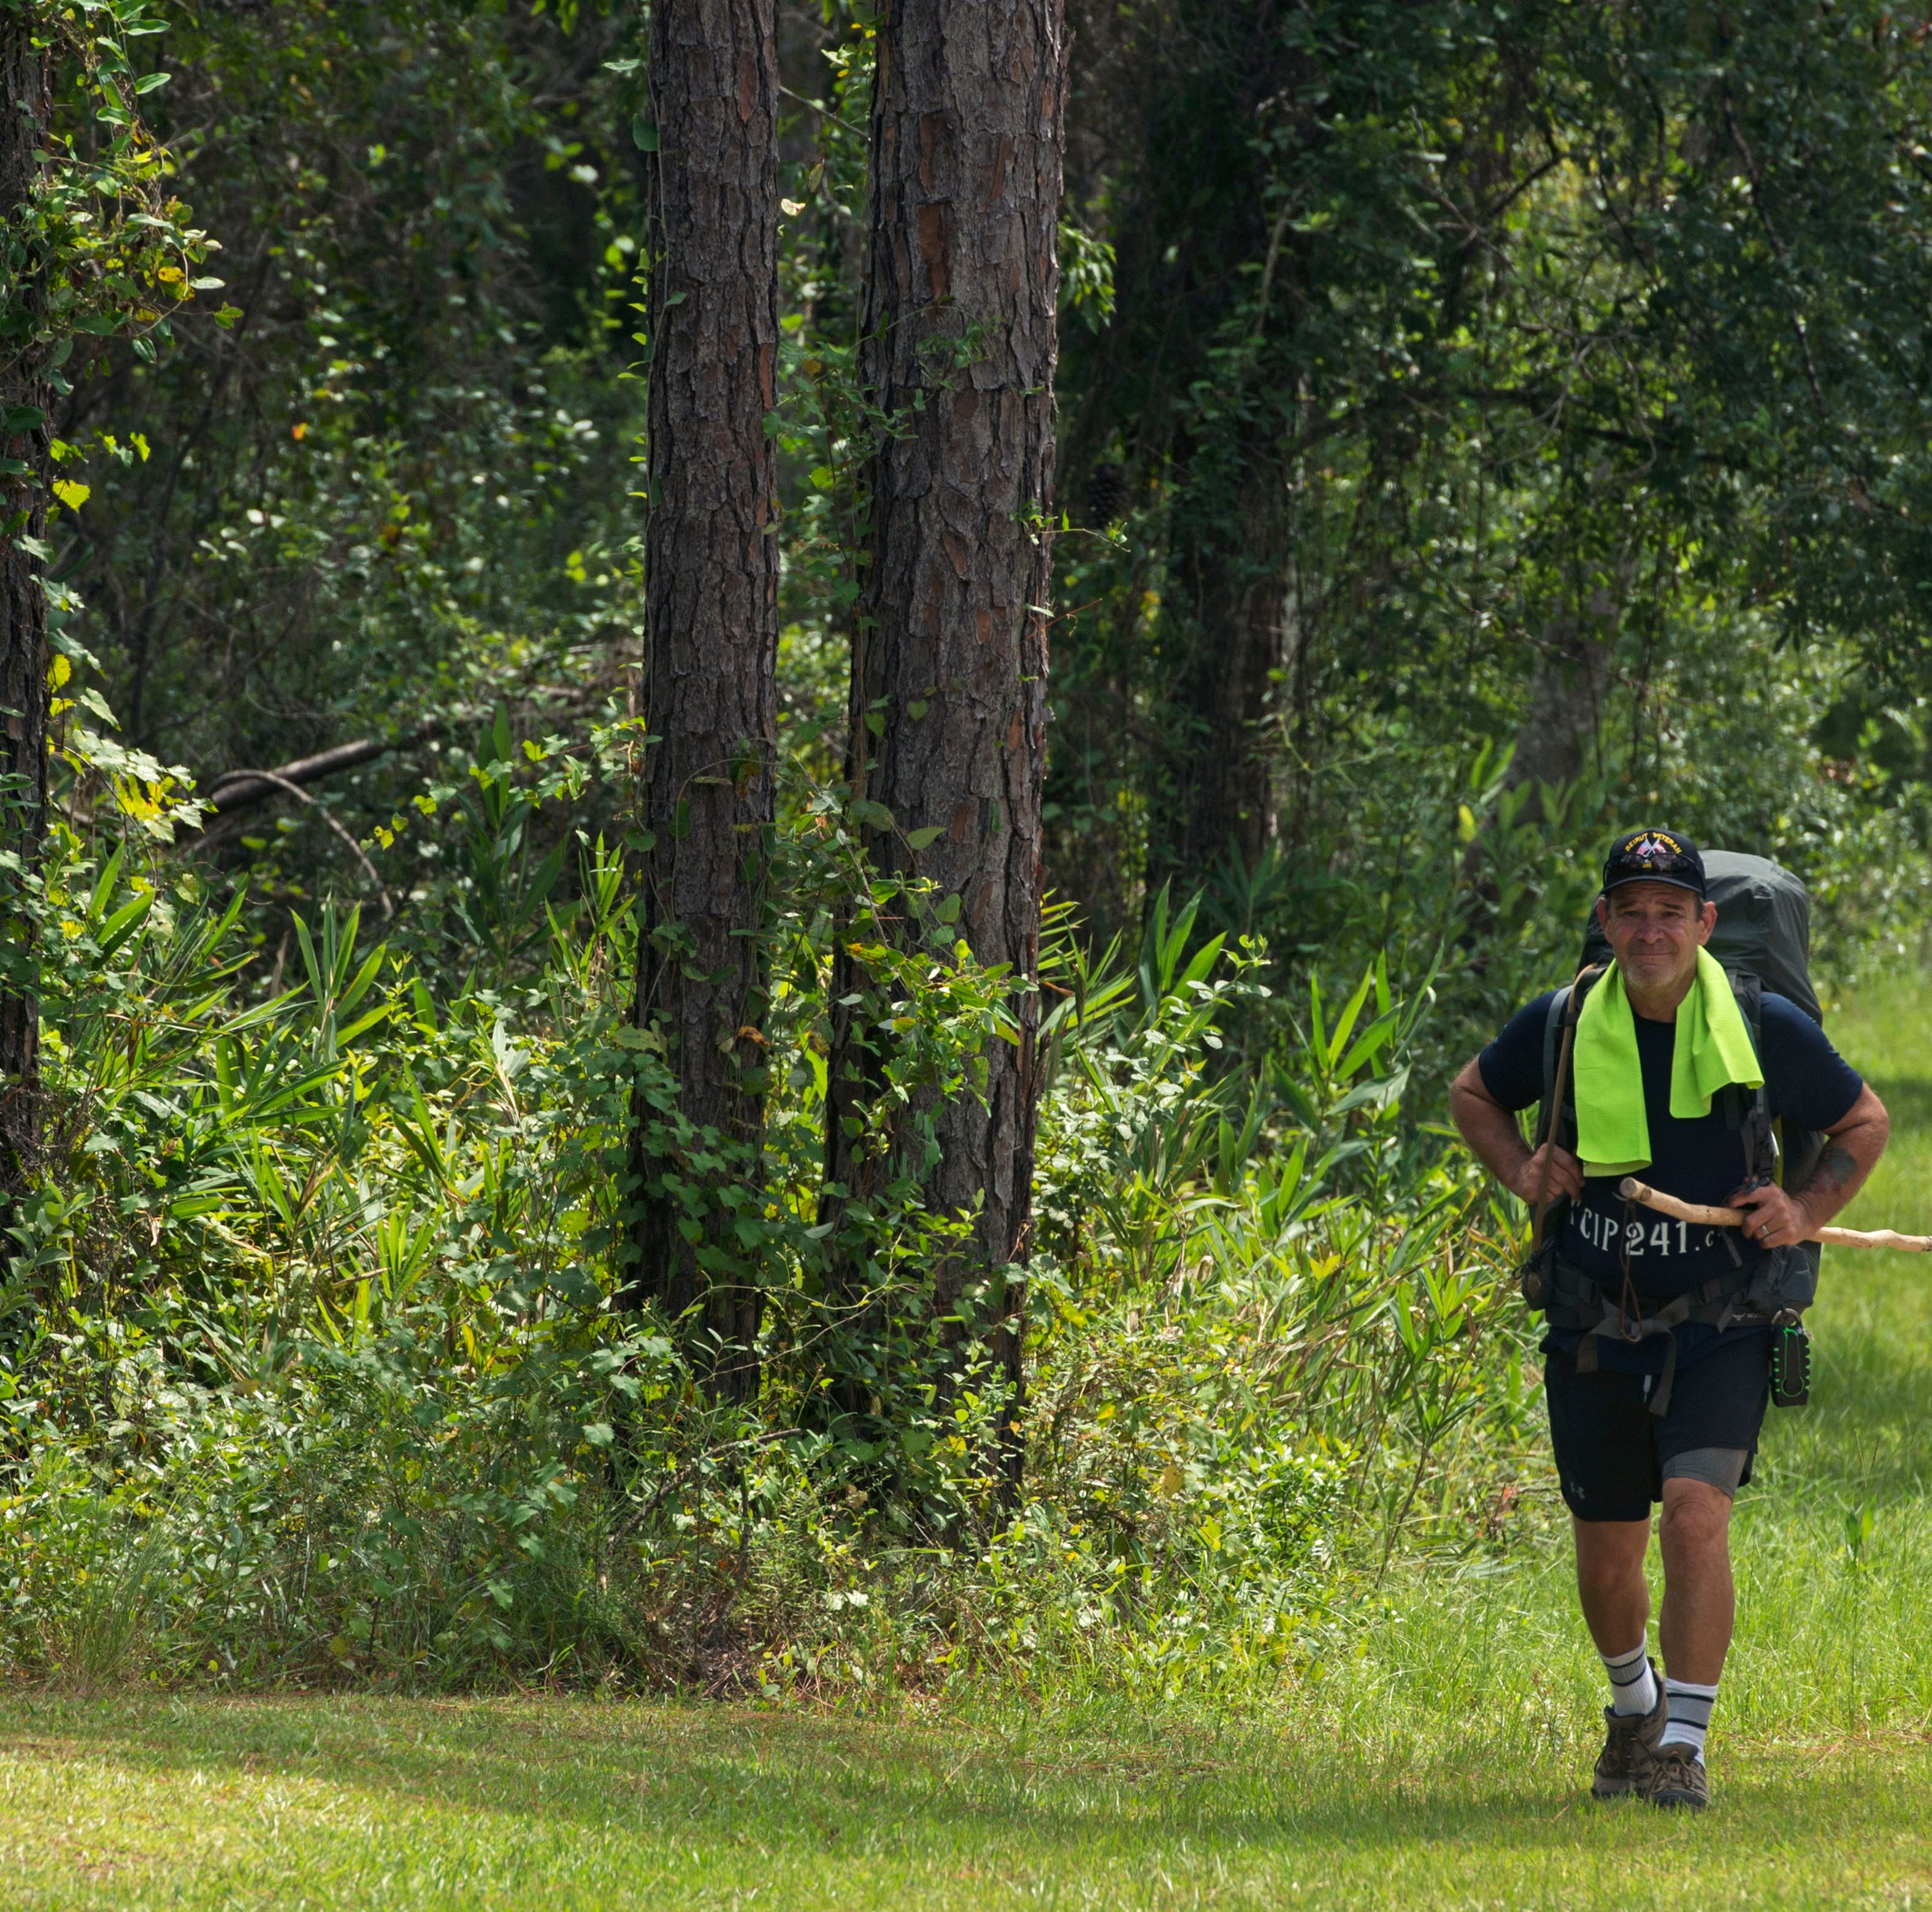 Go take a hike! Blackwater River State Forest offers miles of trails